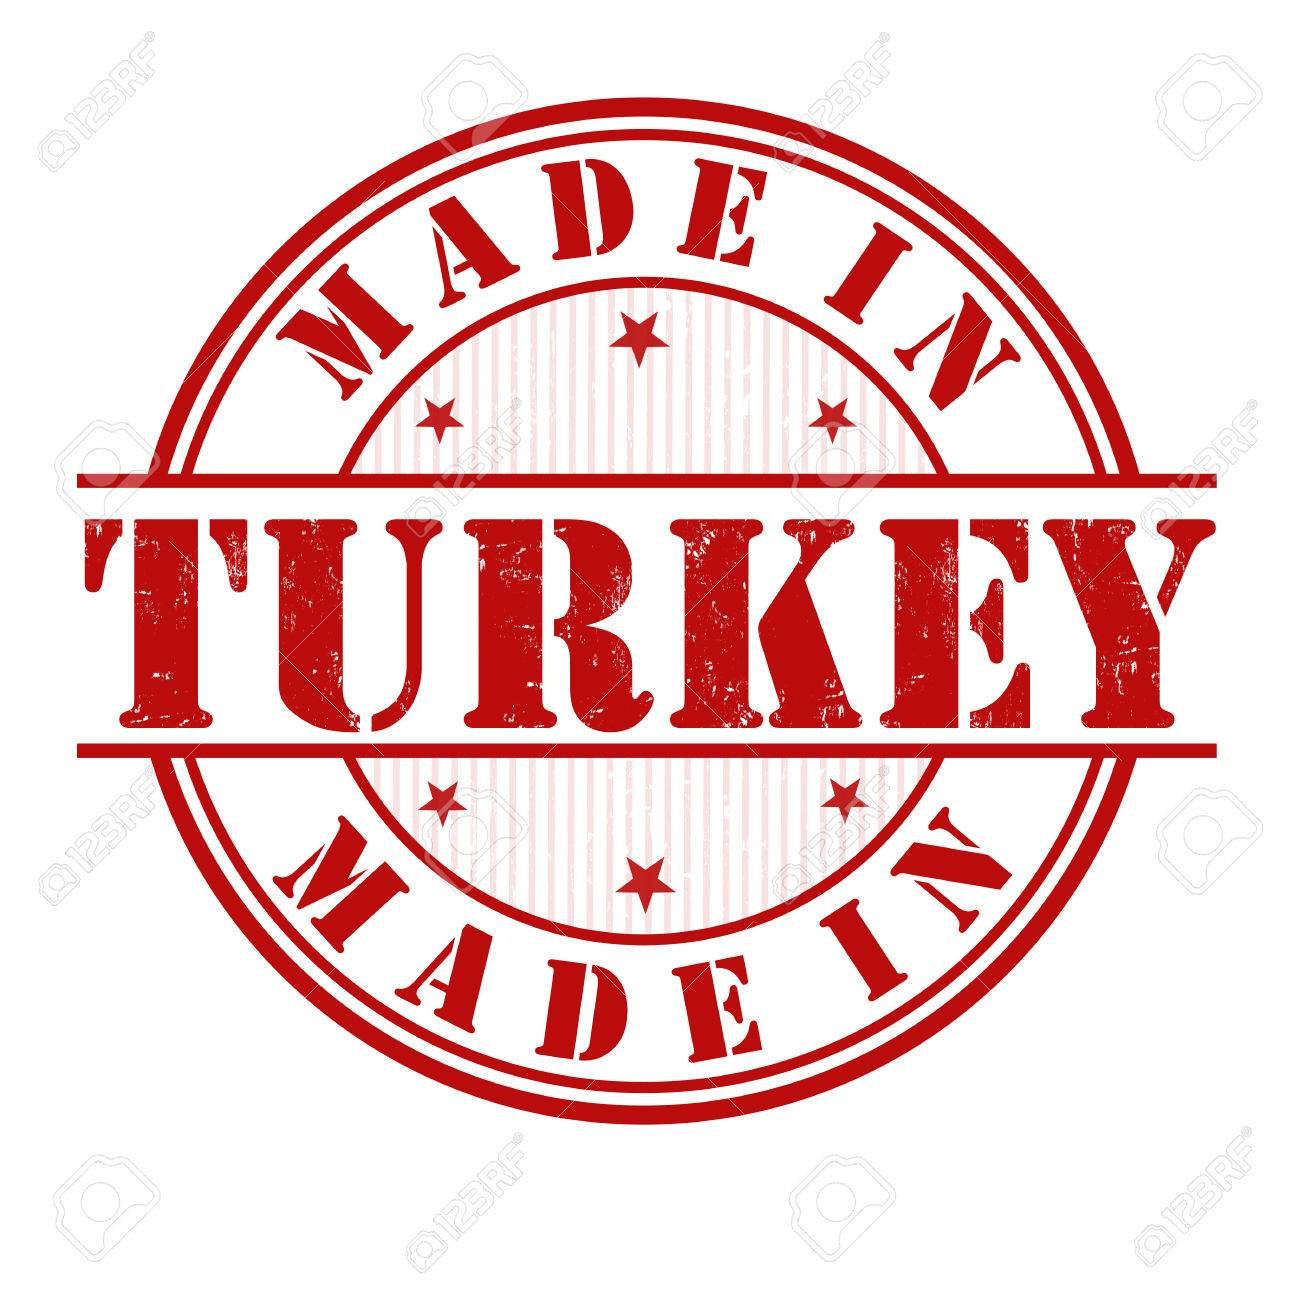 Made in Turkey grunge rubber stamp on white, vector illustration.